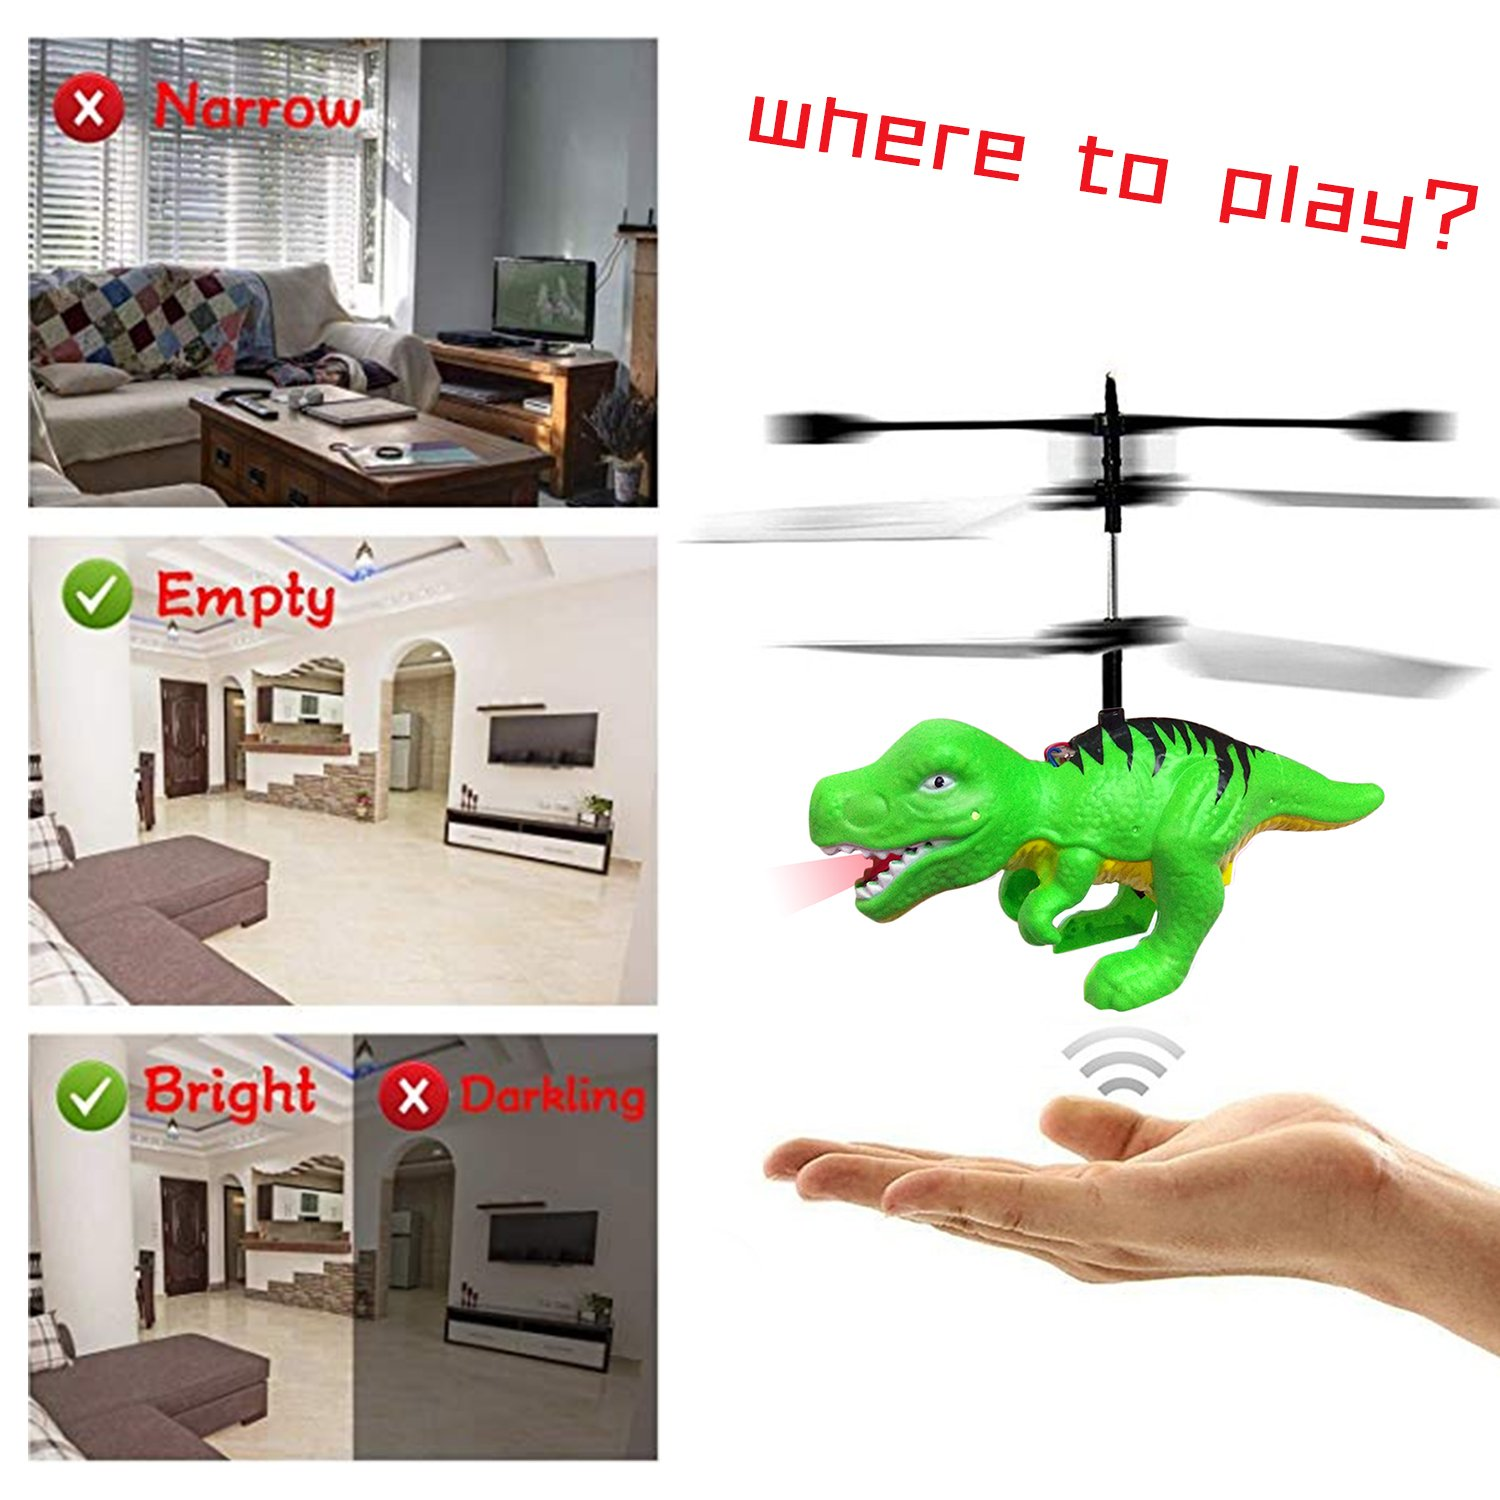 RC Mini Flying Helicopter Dinosaur Toy Gift for 6 Year Old Boys Kids ...